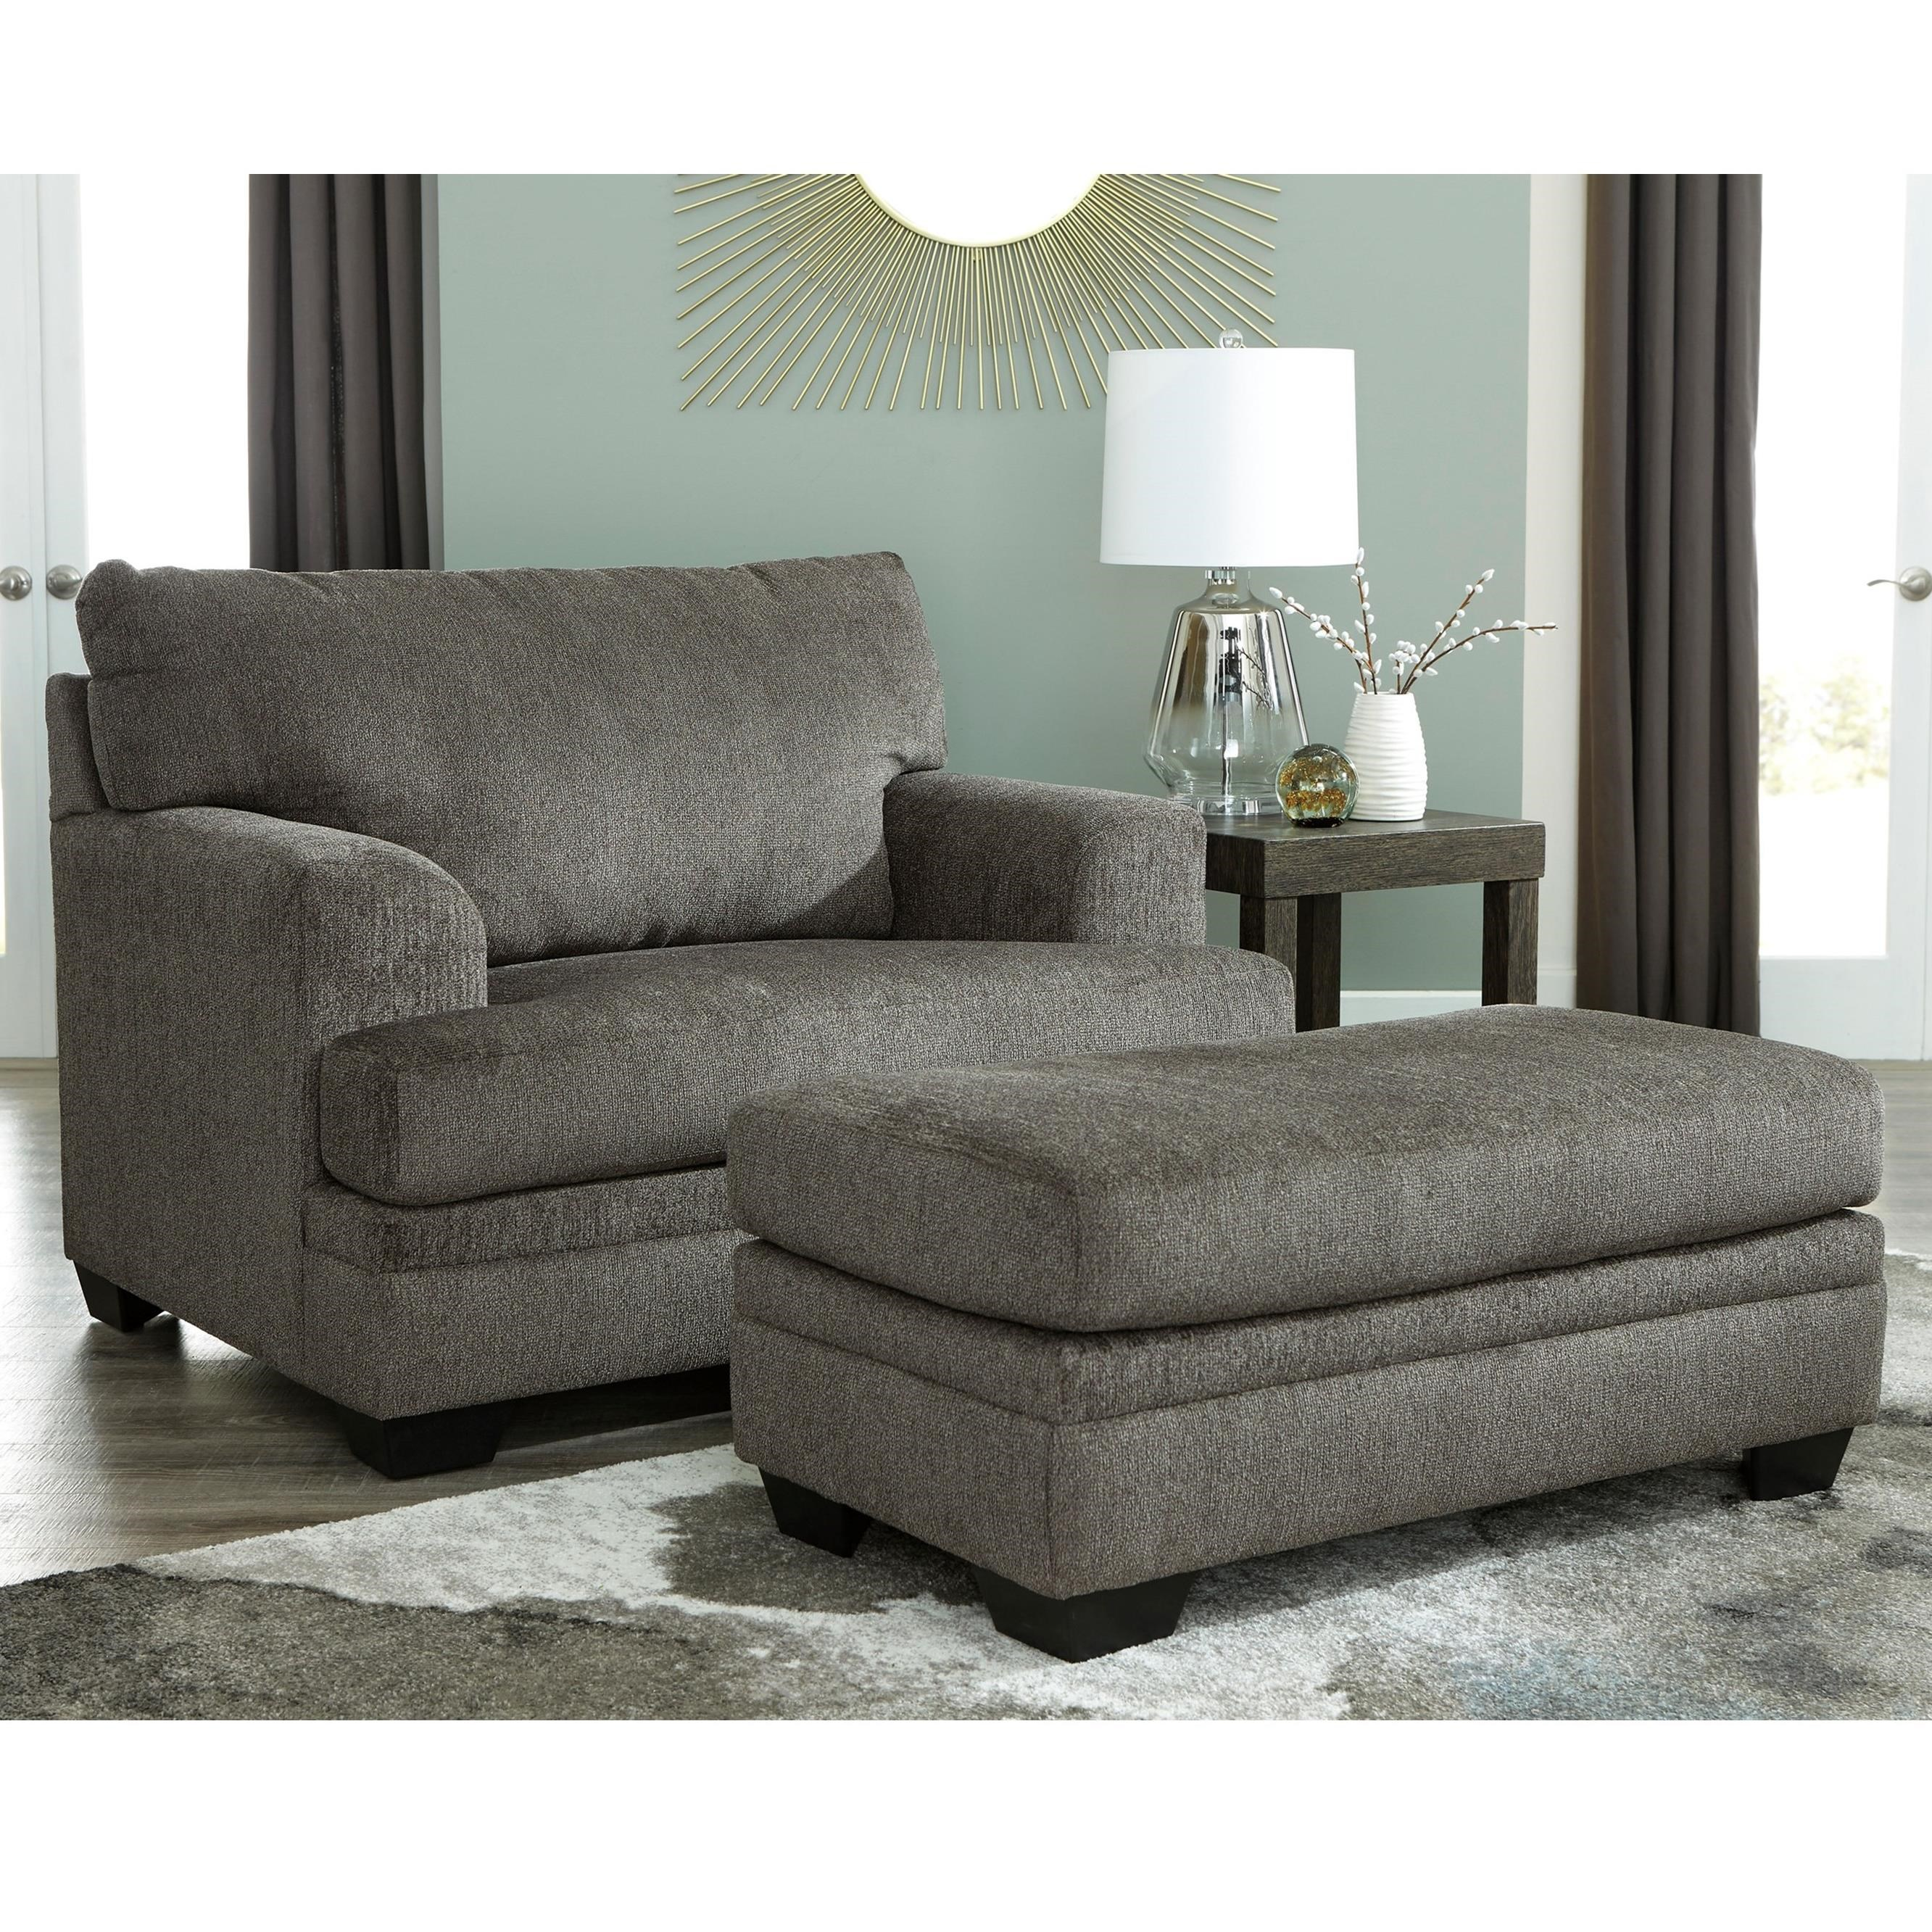 Chair Ottoman Dorsten Contemporary Chair And A Half With Ottoman By Signature Design By Ashley At Royal Furniture